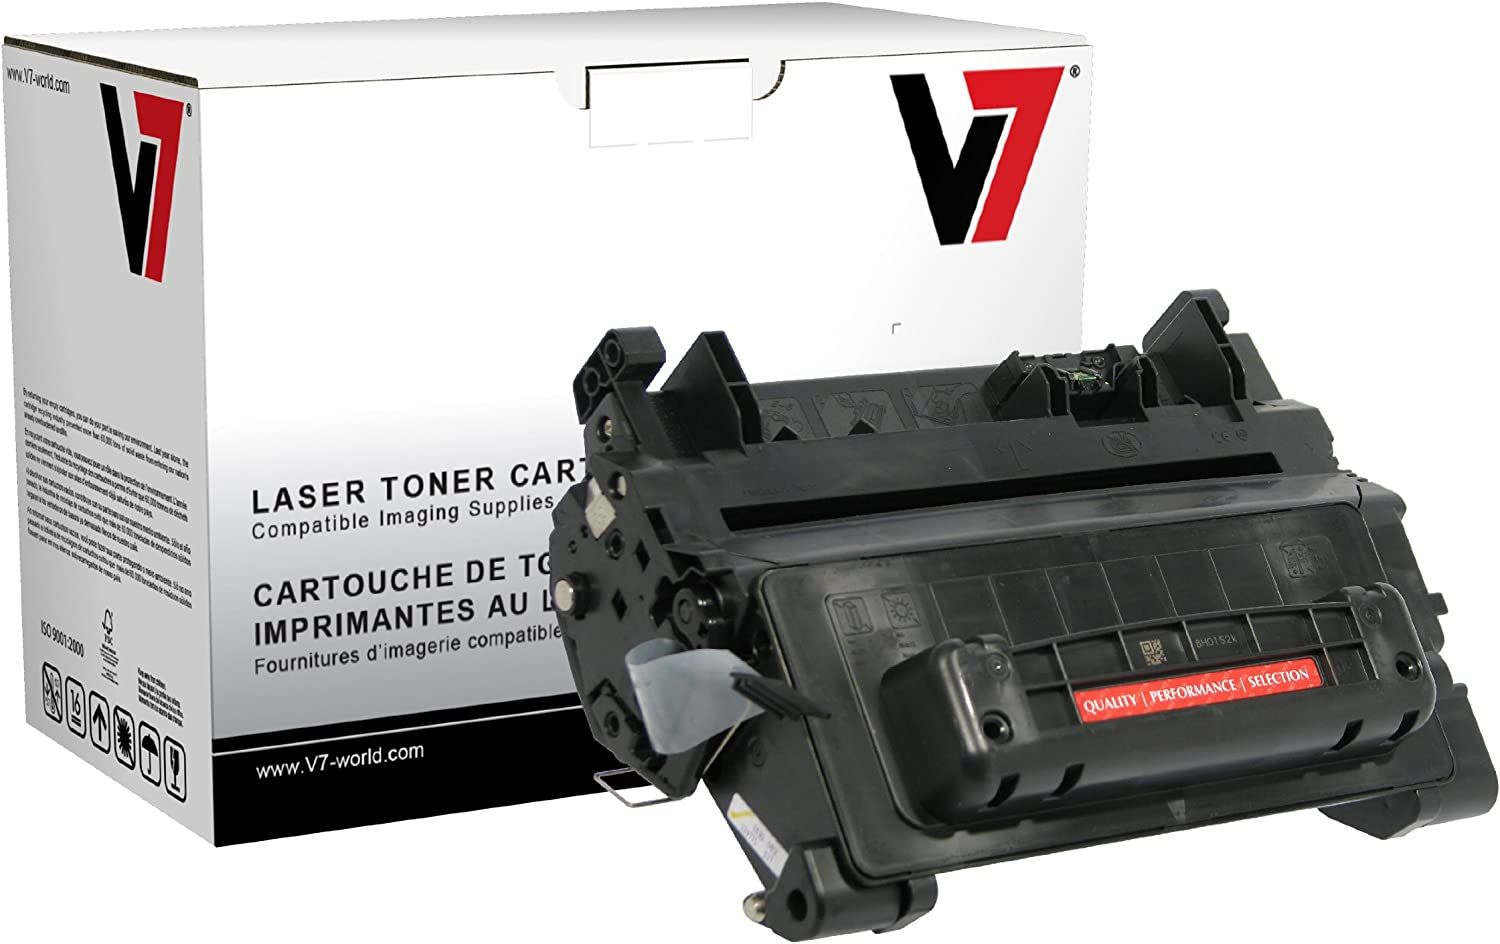 V7 THK2364AHM Remanufactured MICR Toner Cartridge for HP CC364A (HP 64A), TROY 02-81300-001 - 10000 page yield,Black